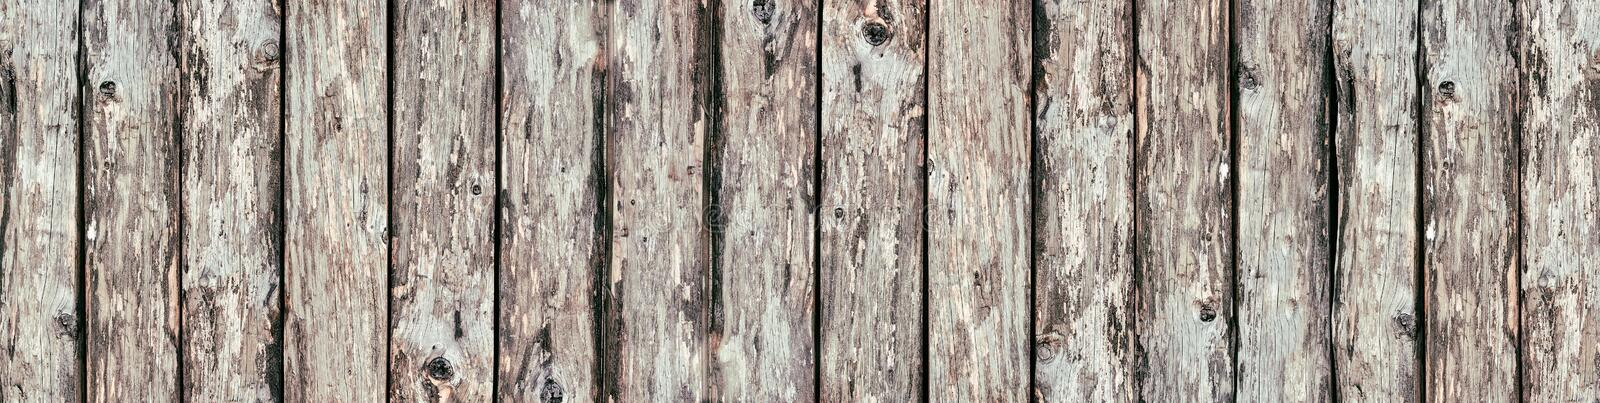 Wide rustic wood logs background - old wooden boards panorama. Wide rustic background. Rough wooden boards texture. Old knotty wood logs surface panorama stock photo